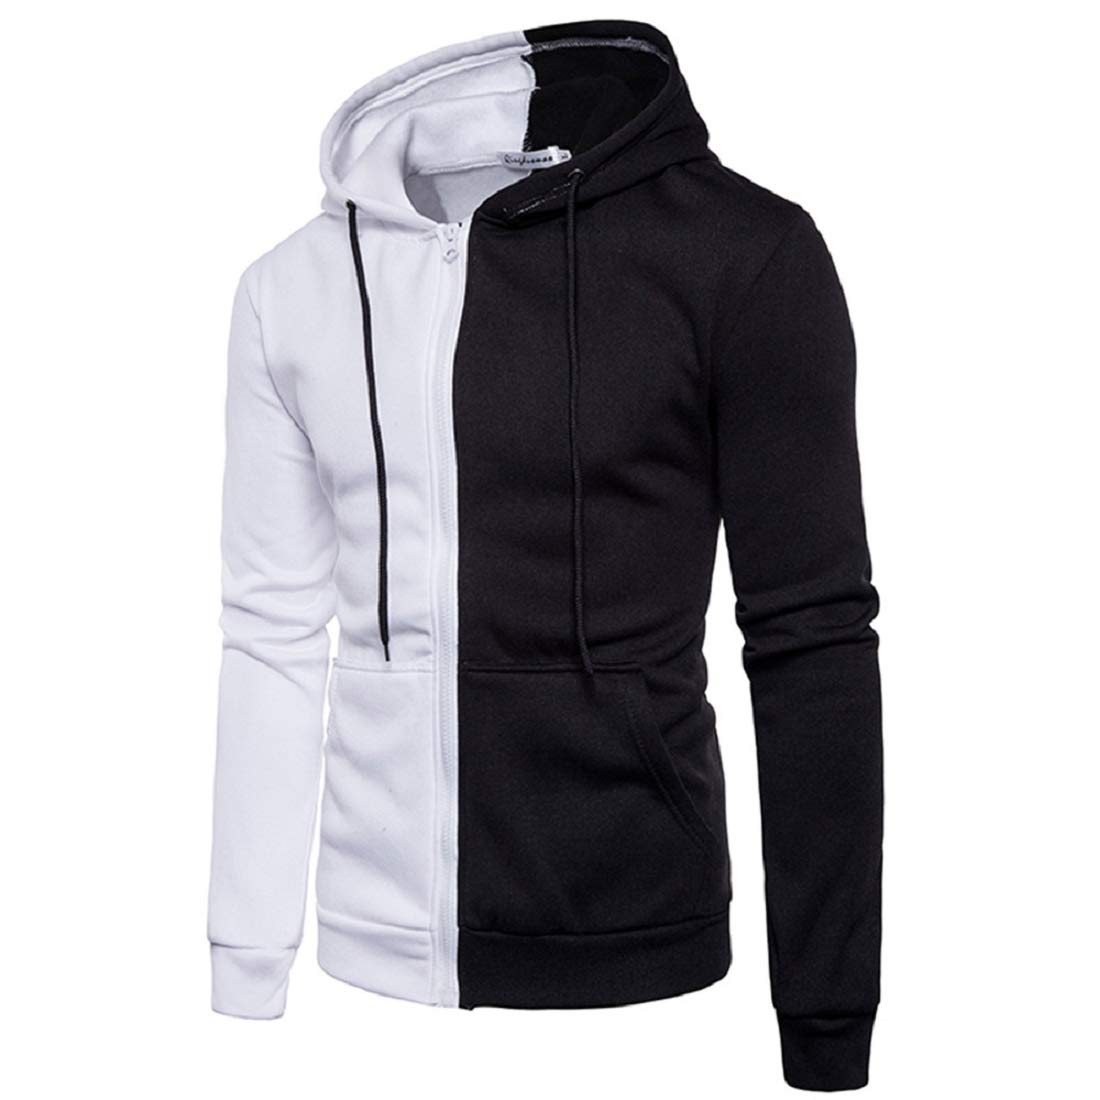 Mens Hoodies Clearance Autumn Winter Splicing Pullover Sweatshirt Tracksuits Casual Cozy Jacket Coat Outwear Tops